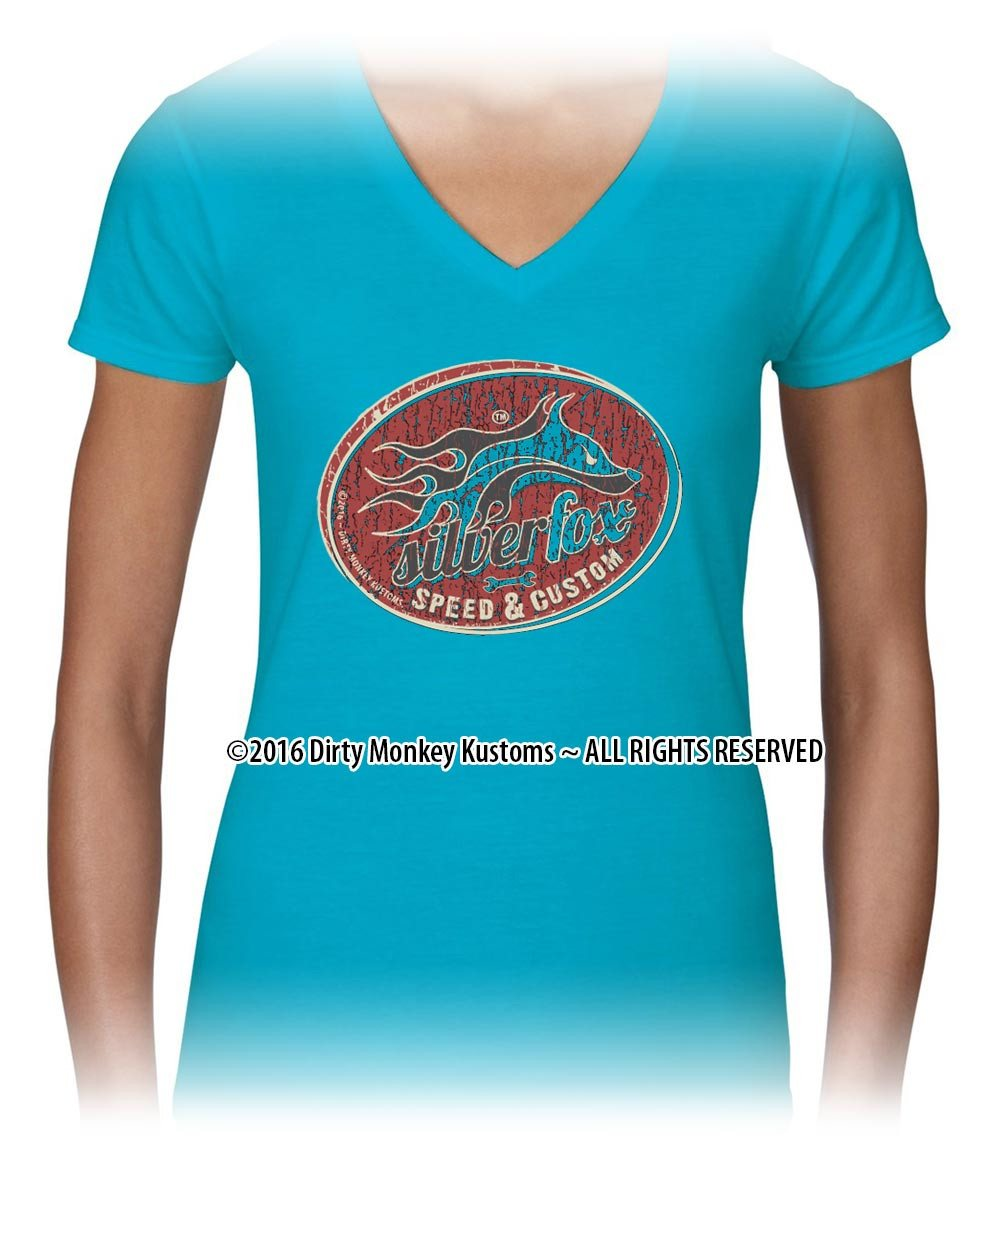 Women's Hot Rod t shirt in blue - Silver Fox